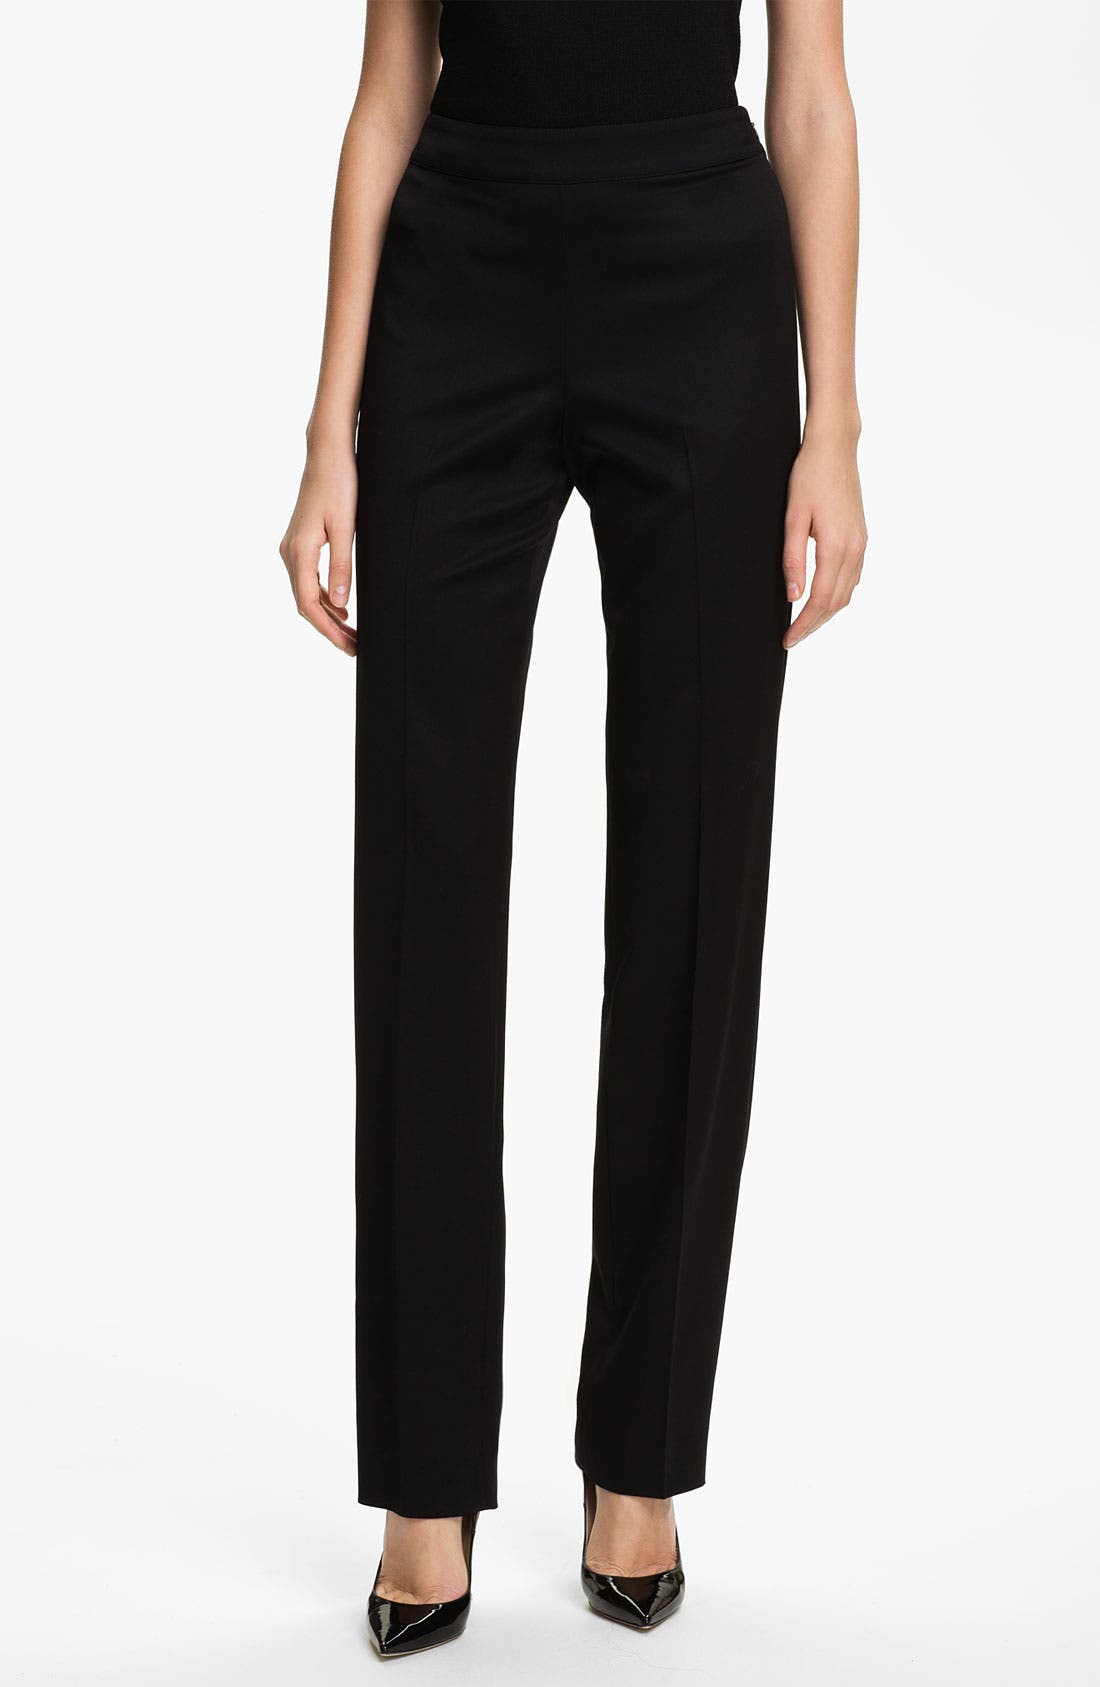 Main Image - St. John Collection 'Diana' Stretch Venetian Wool Pants